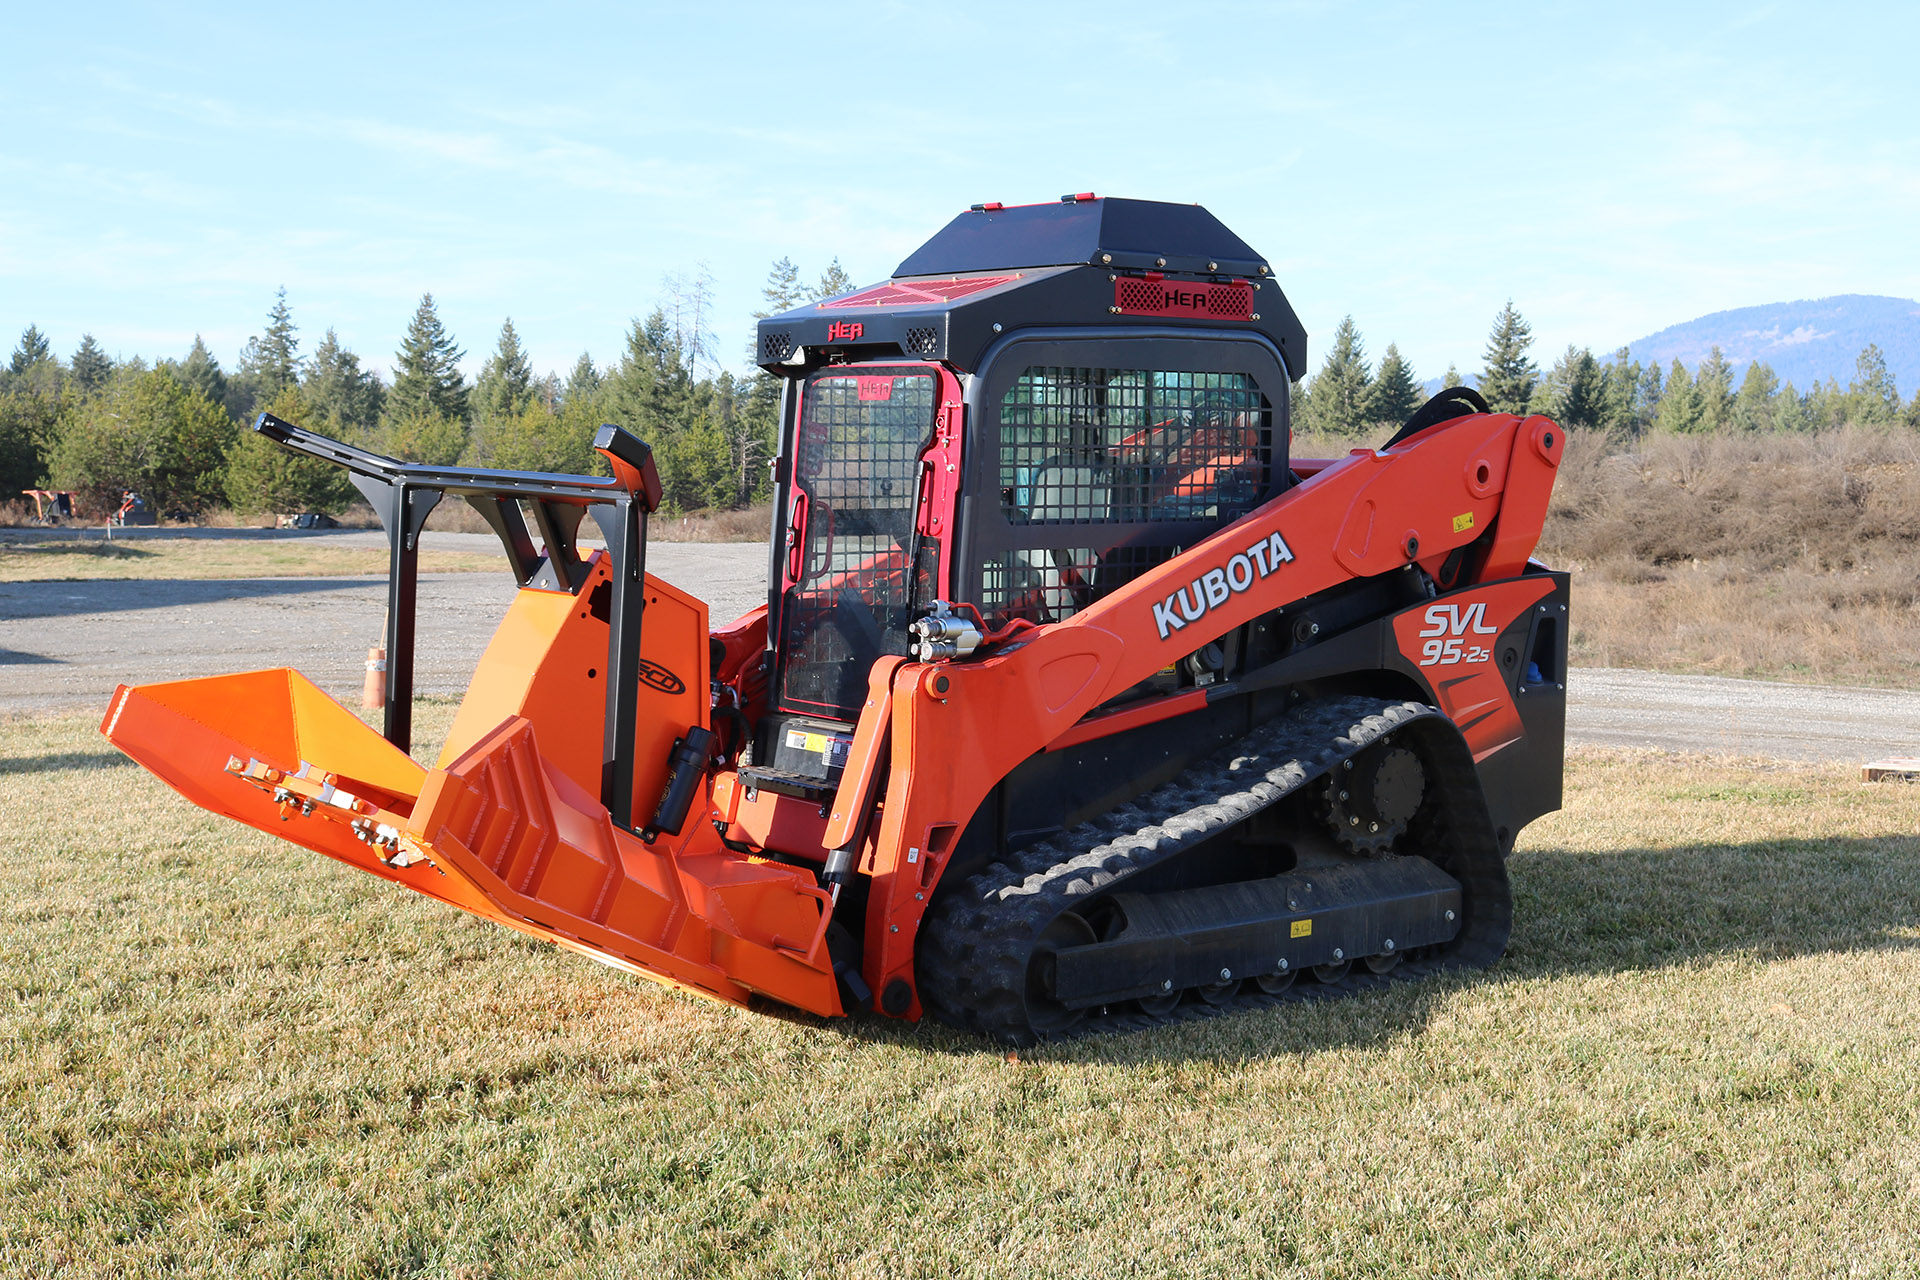 Kubota SVL95-2 Ballistic Door and Cab Guard and Cooler and Eco Mulcher